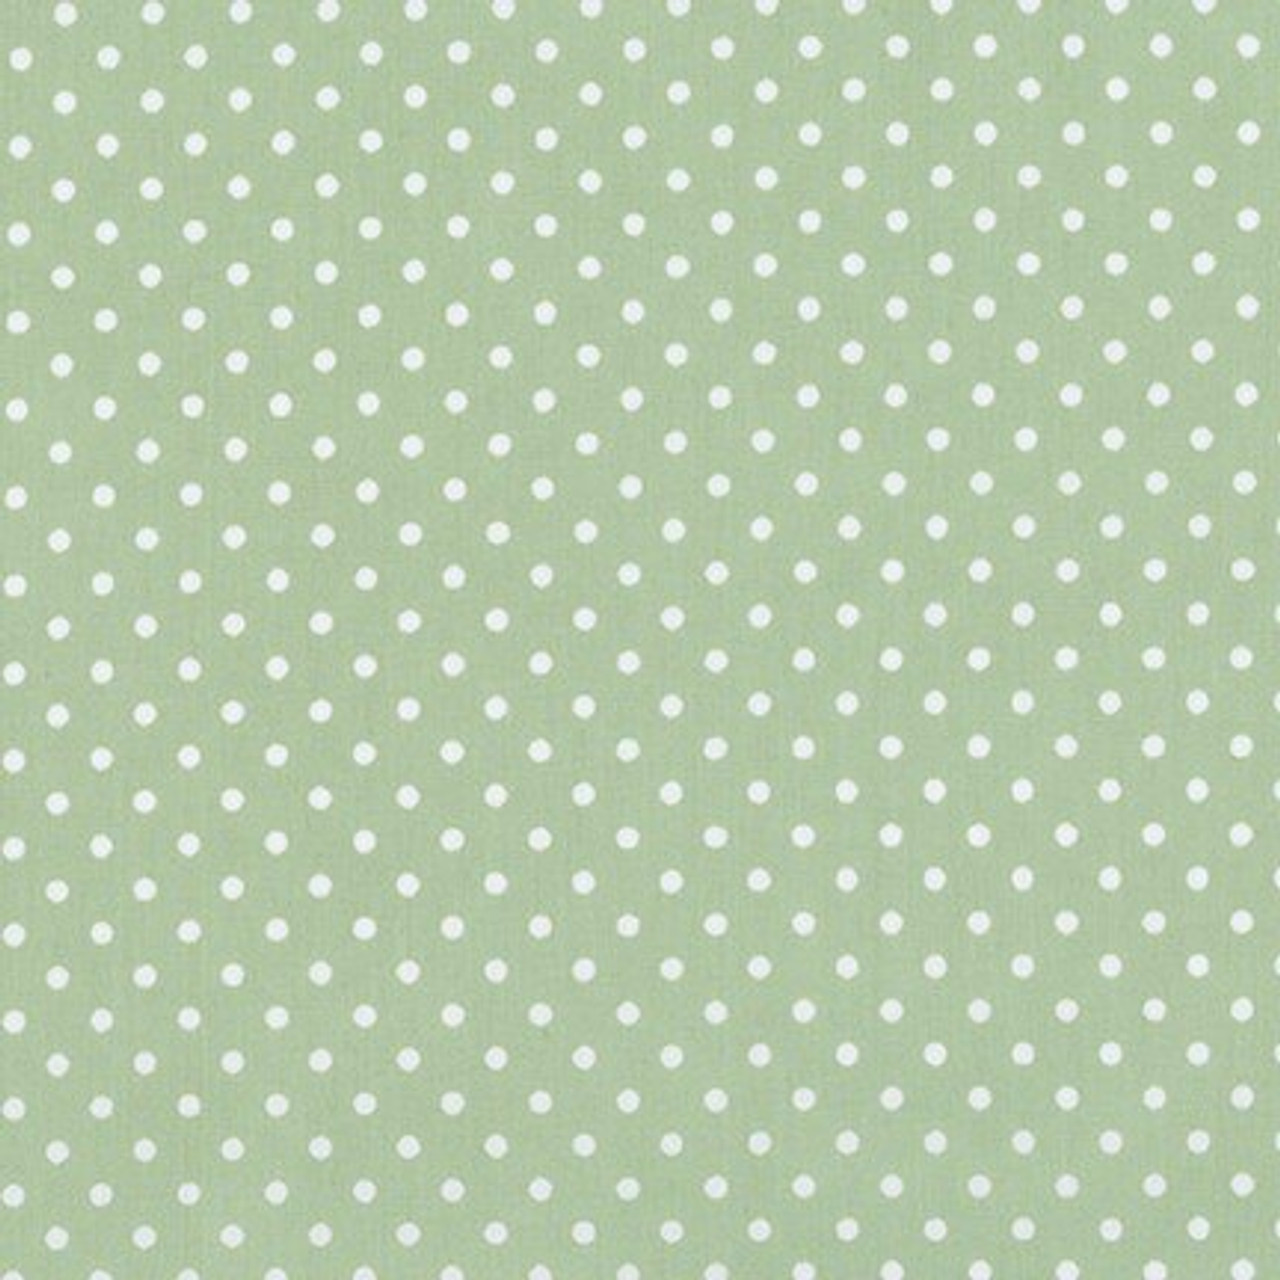 Small Dot - White on Green